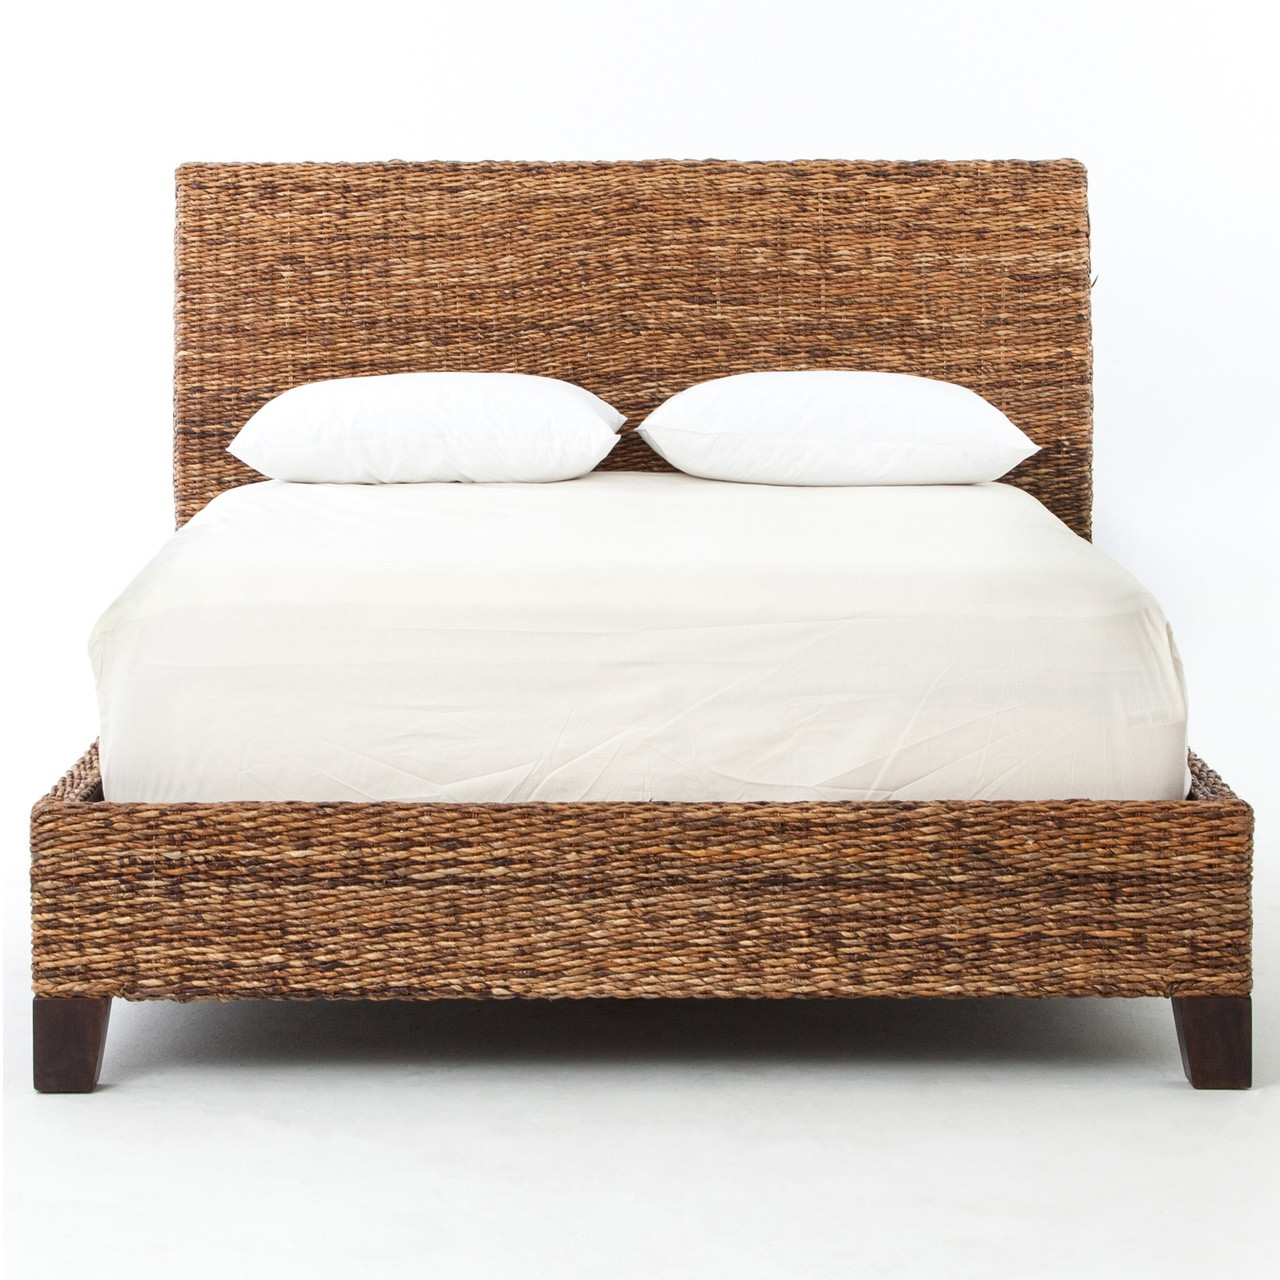 will chairs for sale lanai banana leaf woven wicker queen platform bed zin home 22156 | JLAN 50Q FRT 1 57226.1465608499.1280.1280